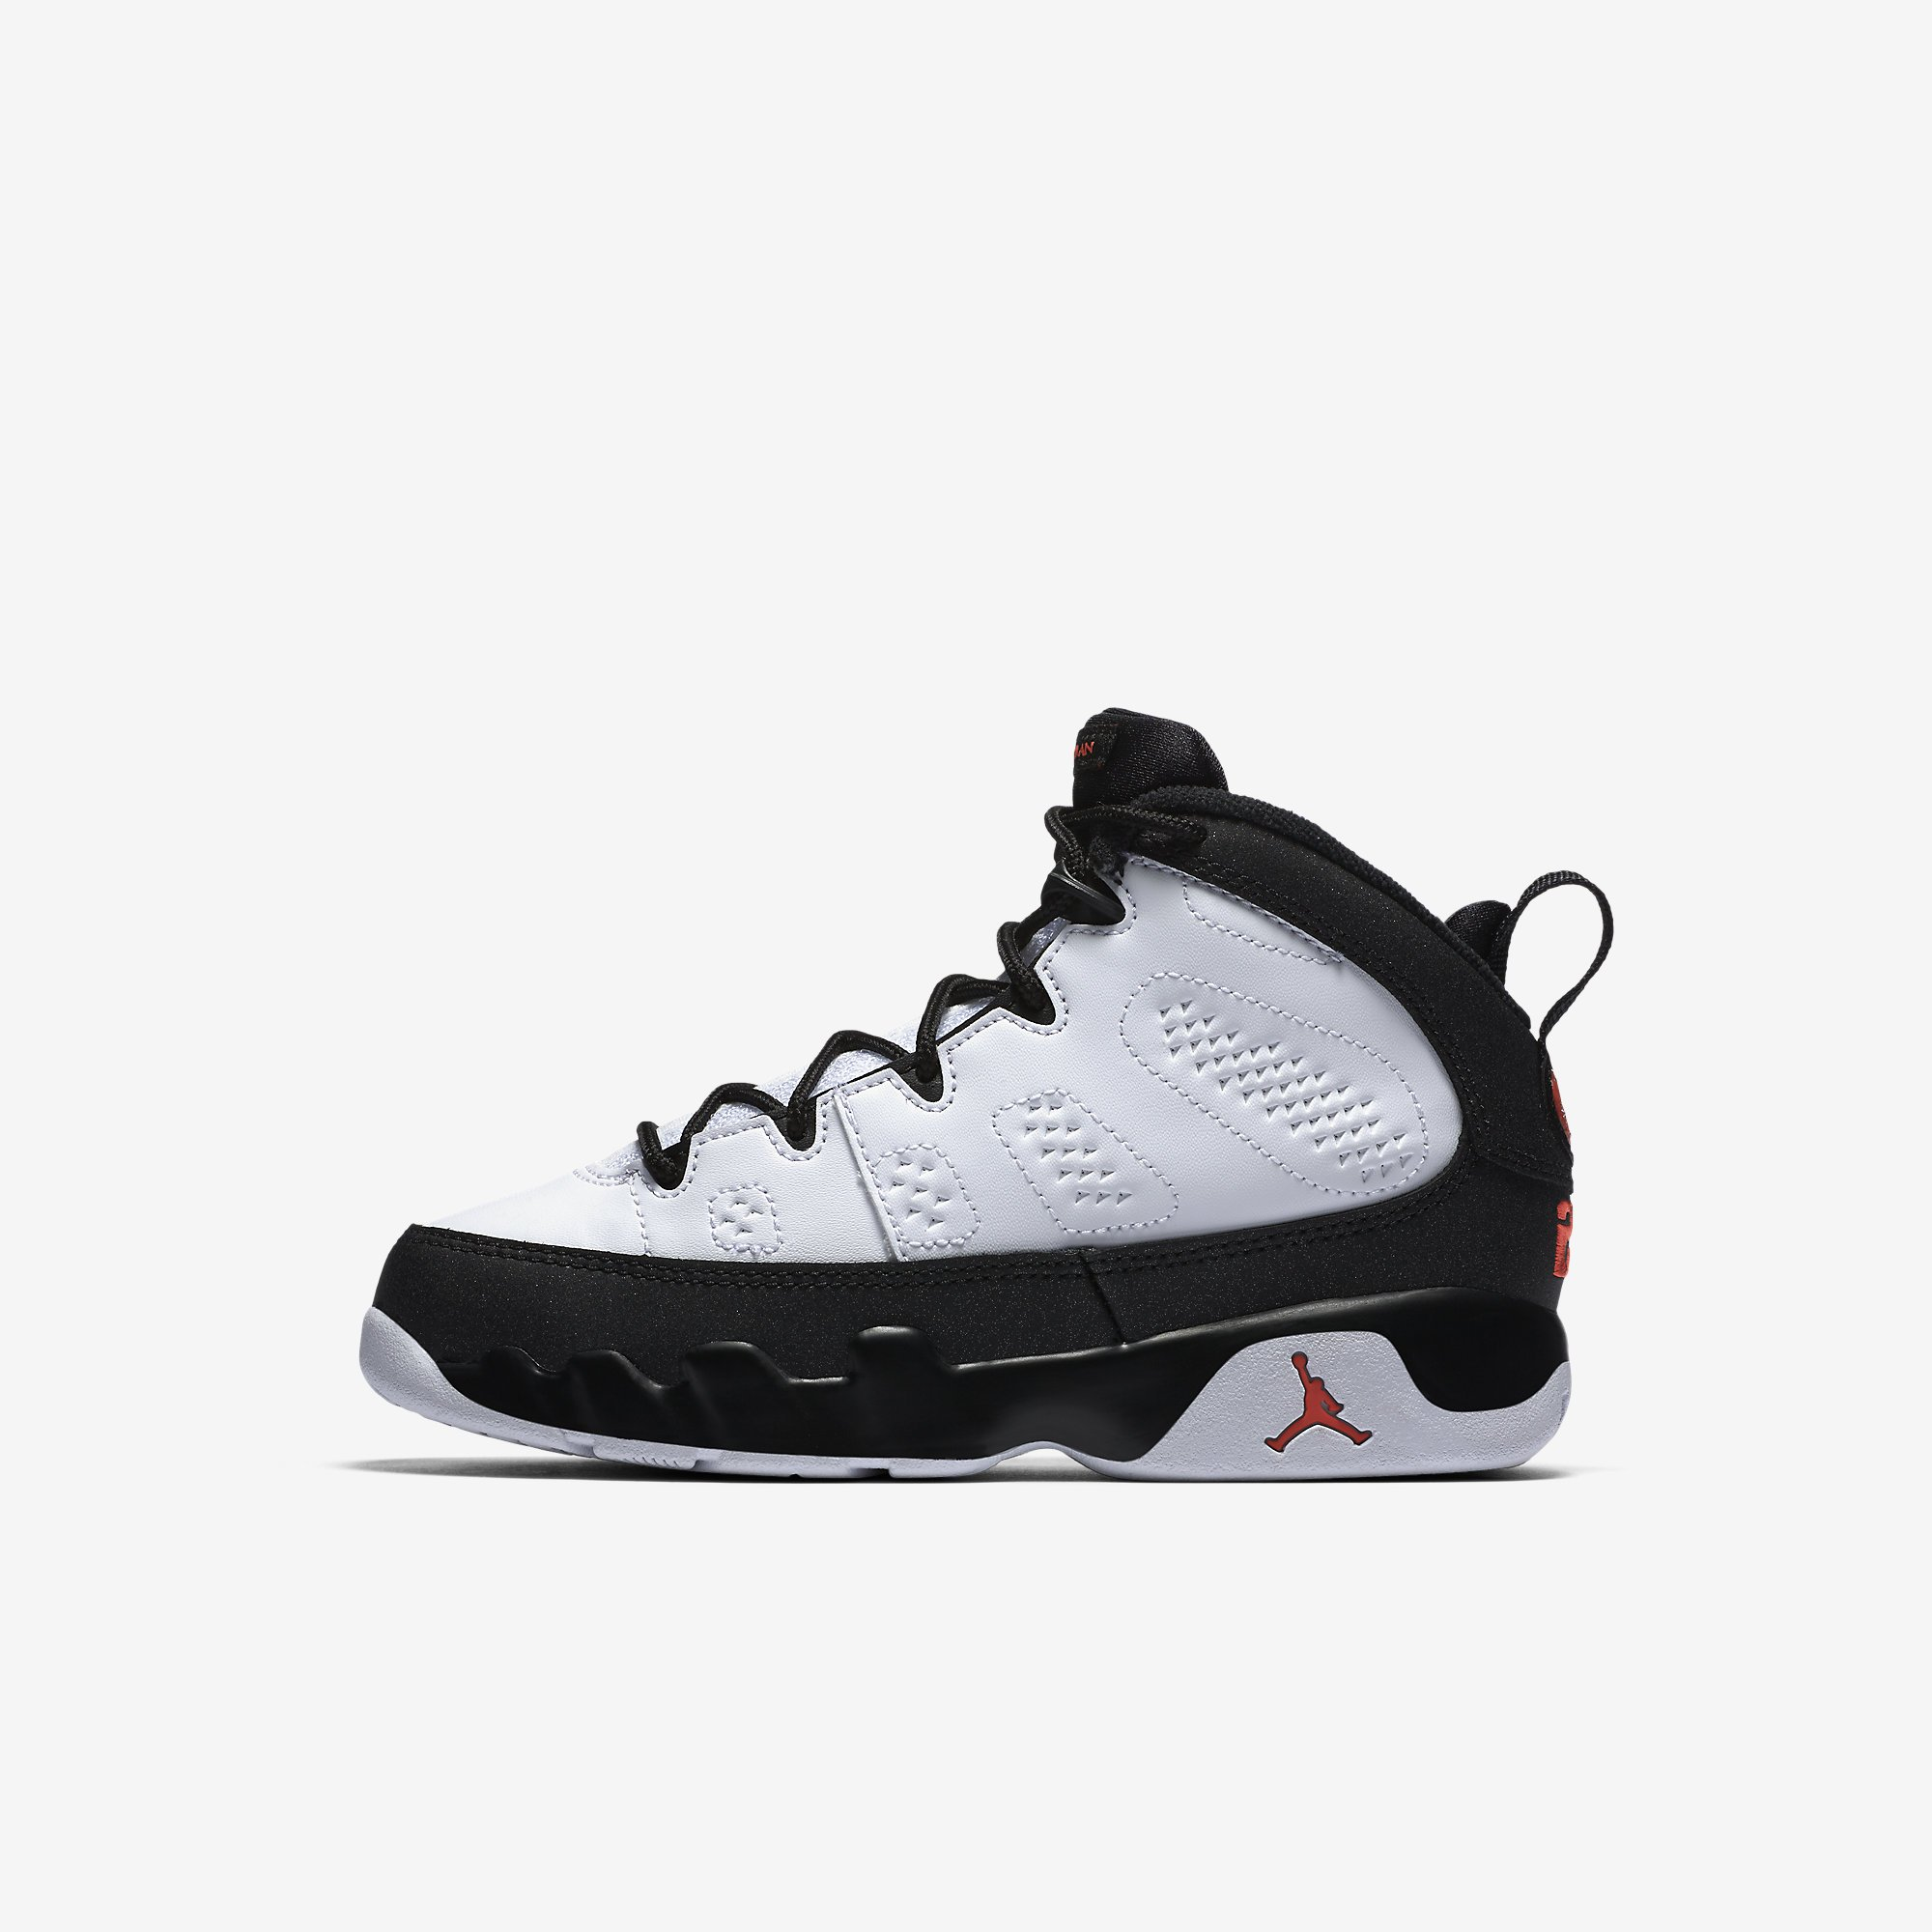 Jordan 9 Retro Little Kids Style: 401811-112 Size: 1 Y US by Jordan